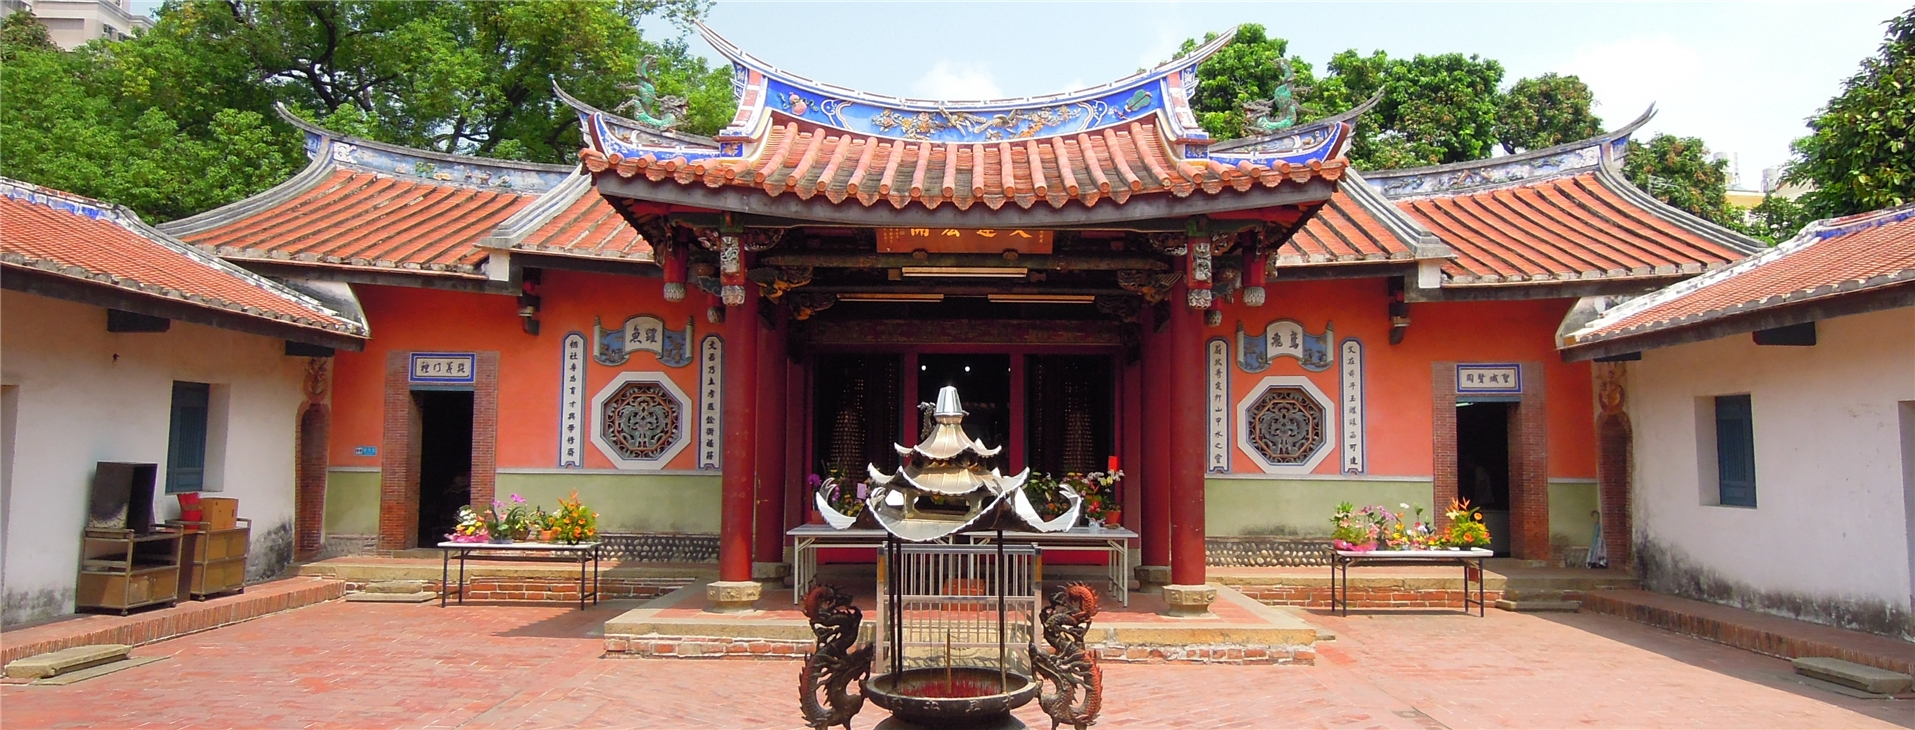 Taichung North Temple Wenchang Temple